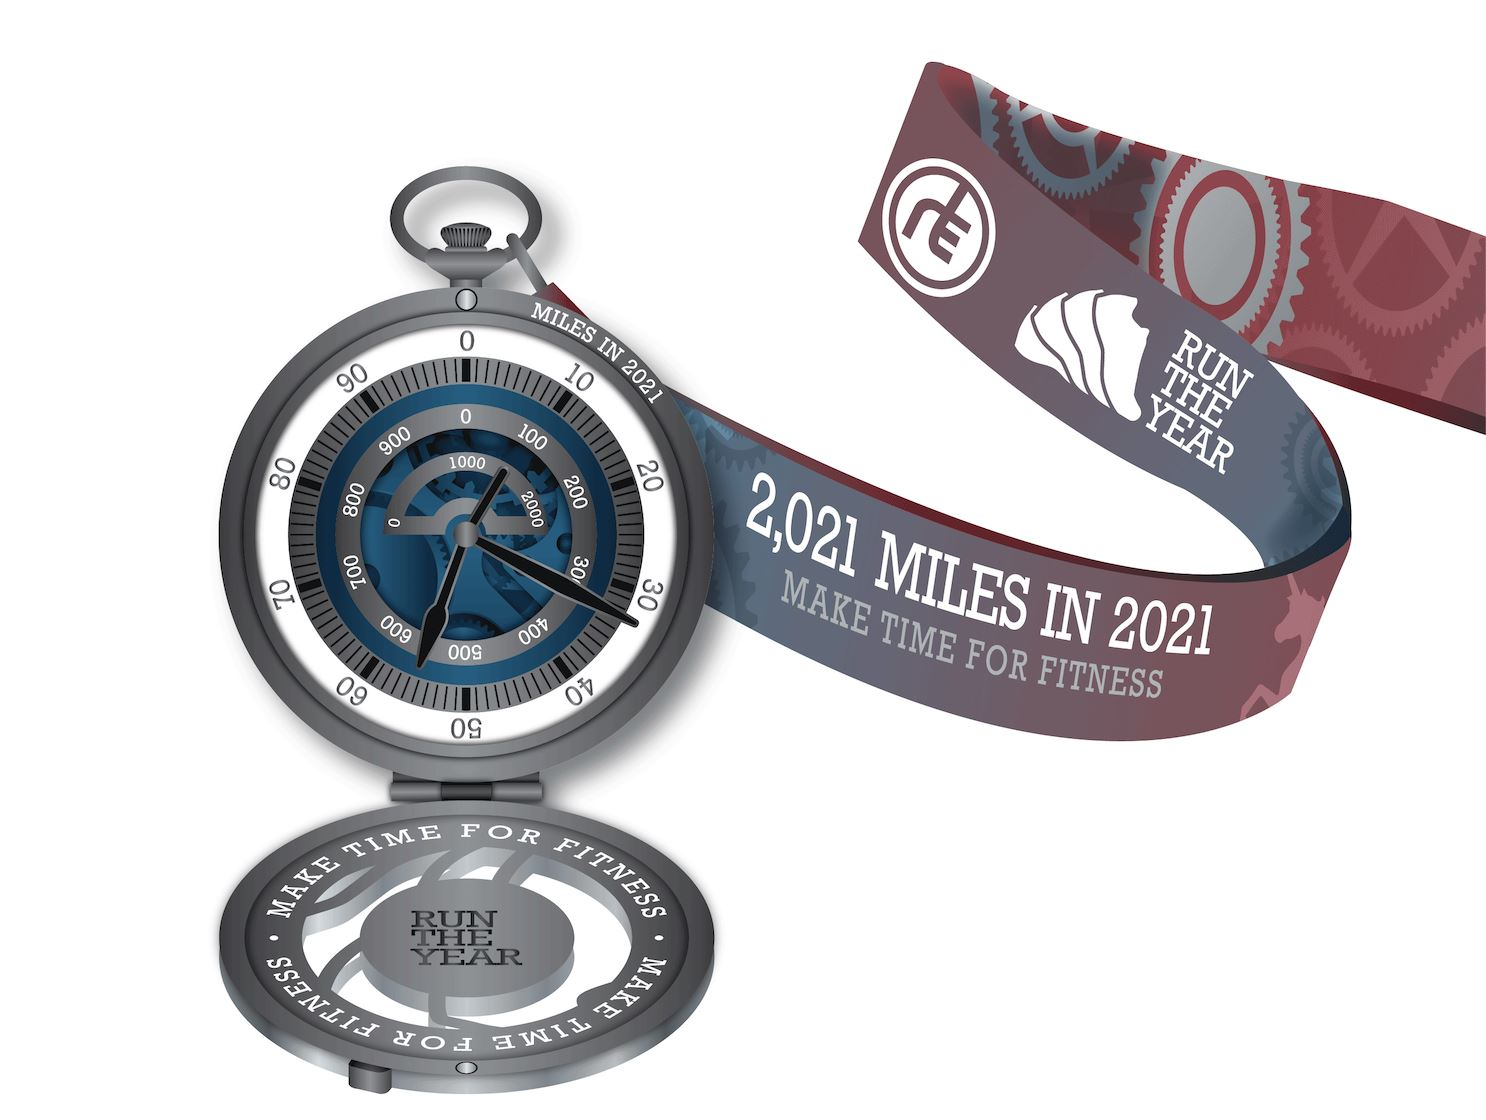 Run The Year 2021 Medal Only (No Registration!) Run The Edge Store